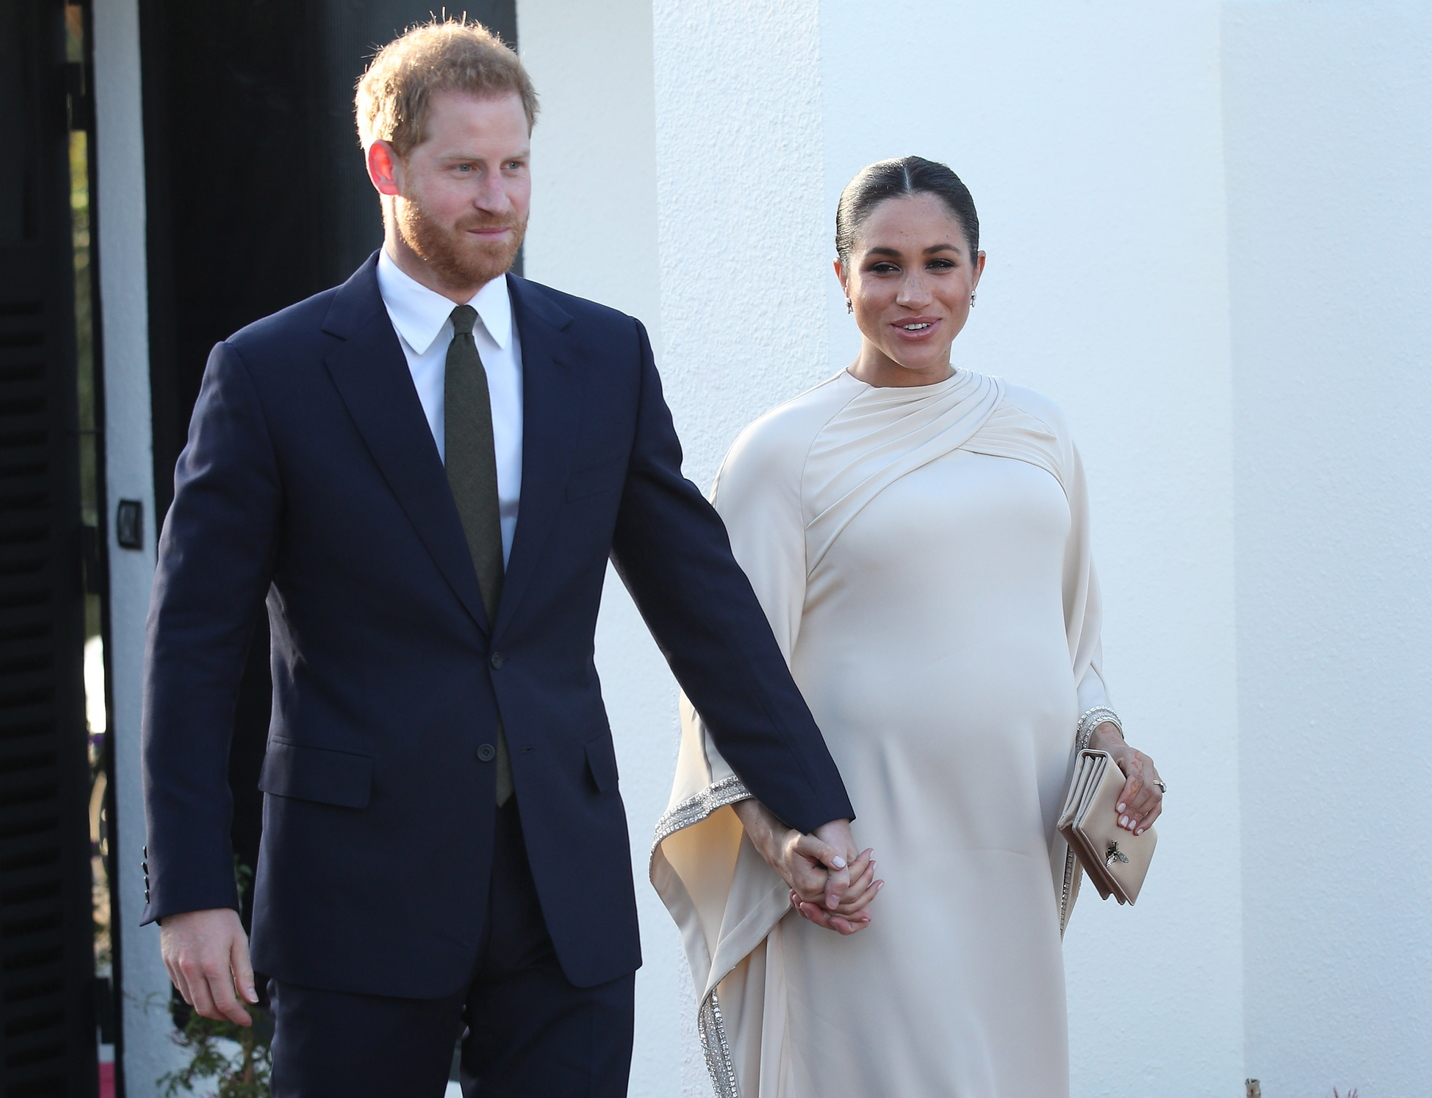 Harry herceg és Meghan hercegné (Fotó: Getty Images/EPA/Yui Mok / POOL)